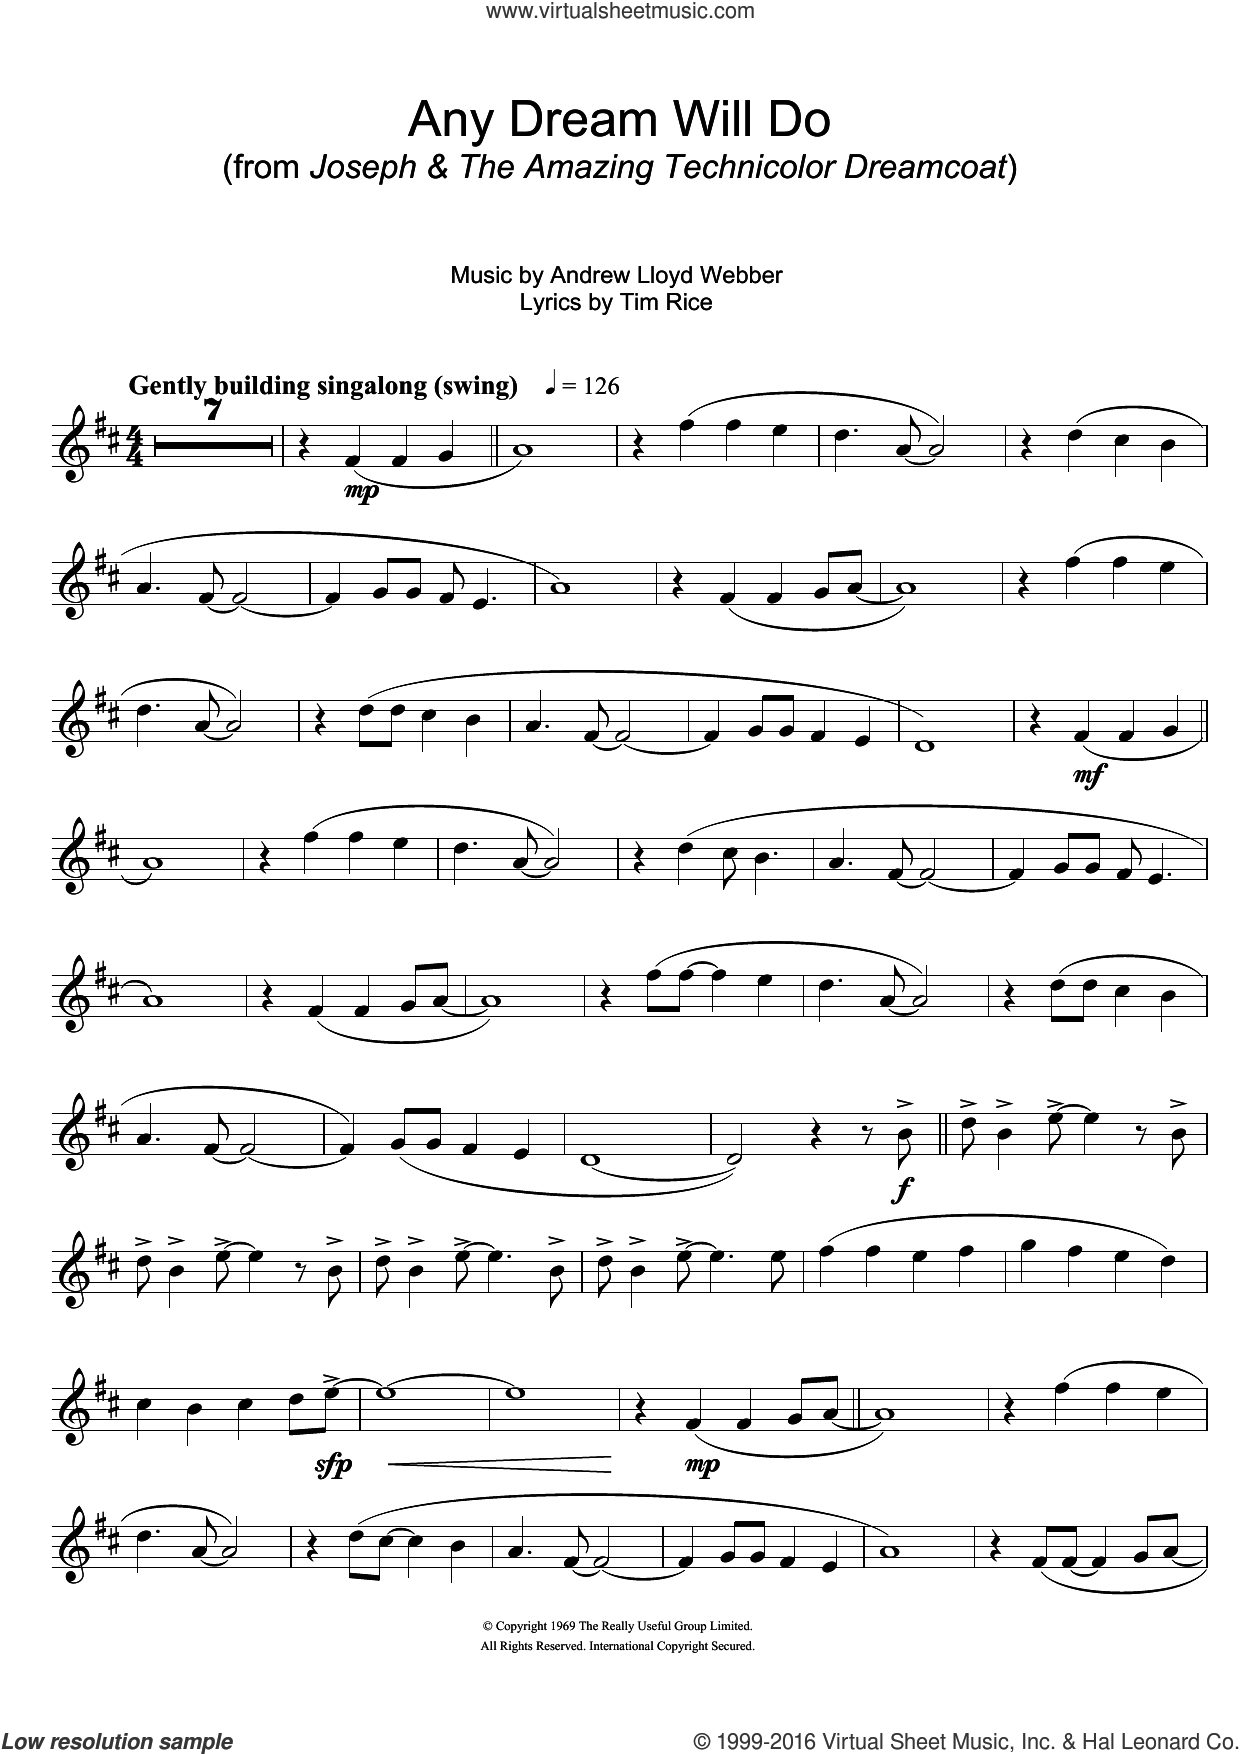 Any Dream Will Do (from Joseph And The Amazing Technicolor Dreamcoat) sheet music for trumpet solo by Andrew Lloyd Webber and Tim Rice, intermediate skill level